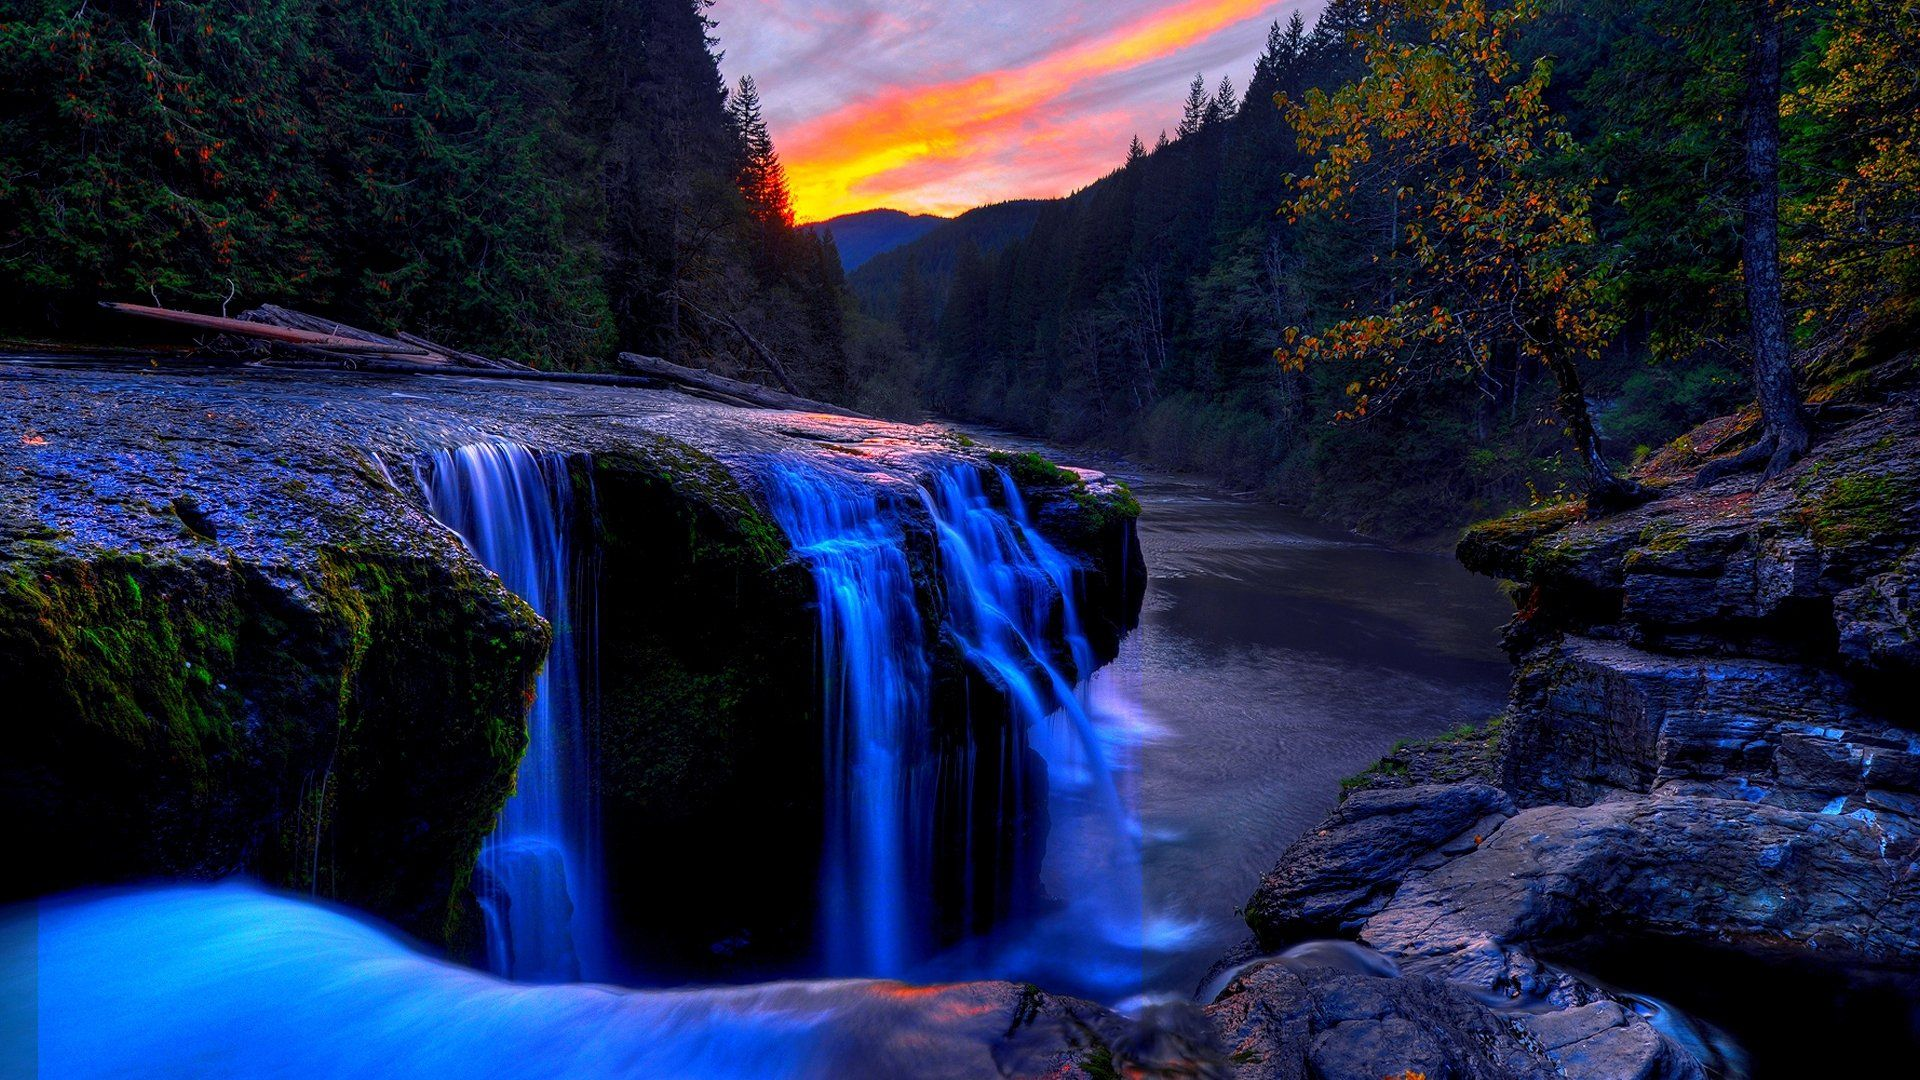 Beautiful Waterfall Hd Wallpaper Nature Wallpapers Chainimage Waterfall Wallpaper Waterfall Mountain Waterfall